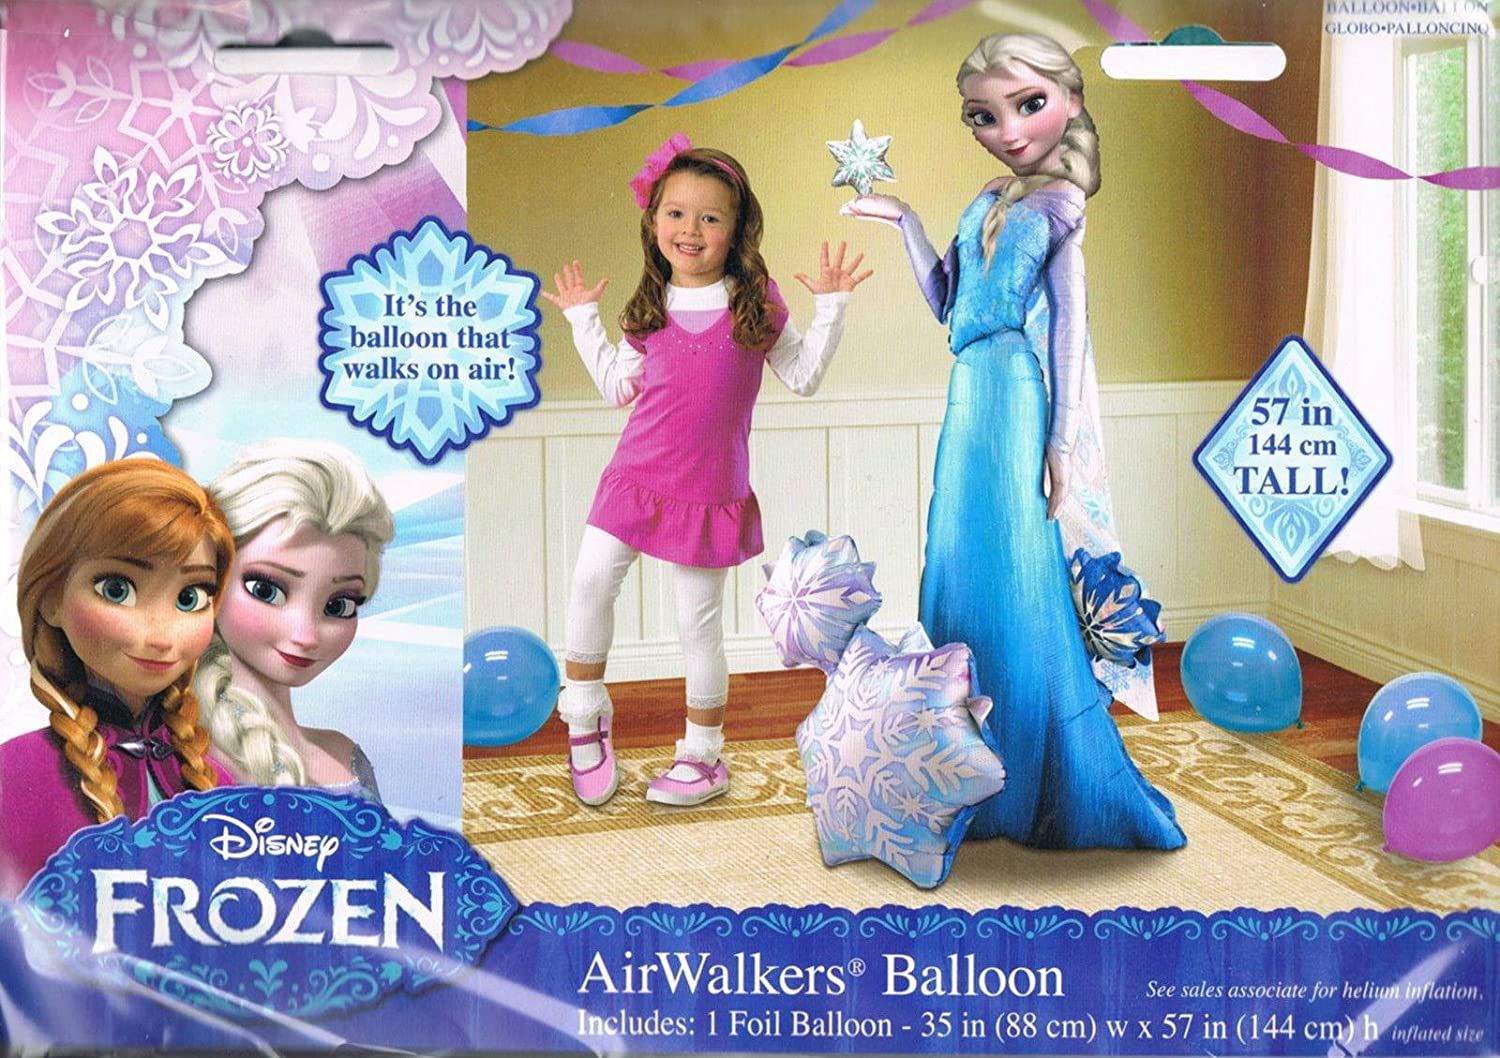 Disney Frozen Elsa Airwalker 57